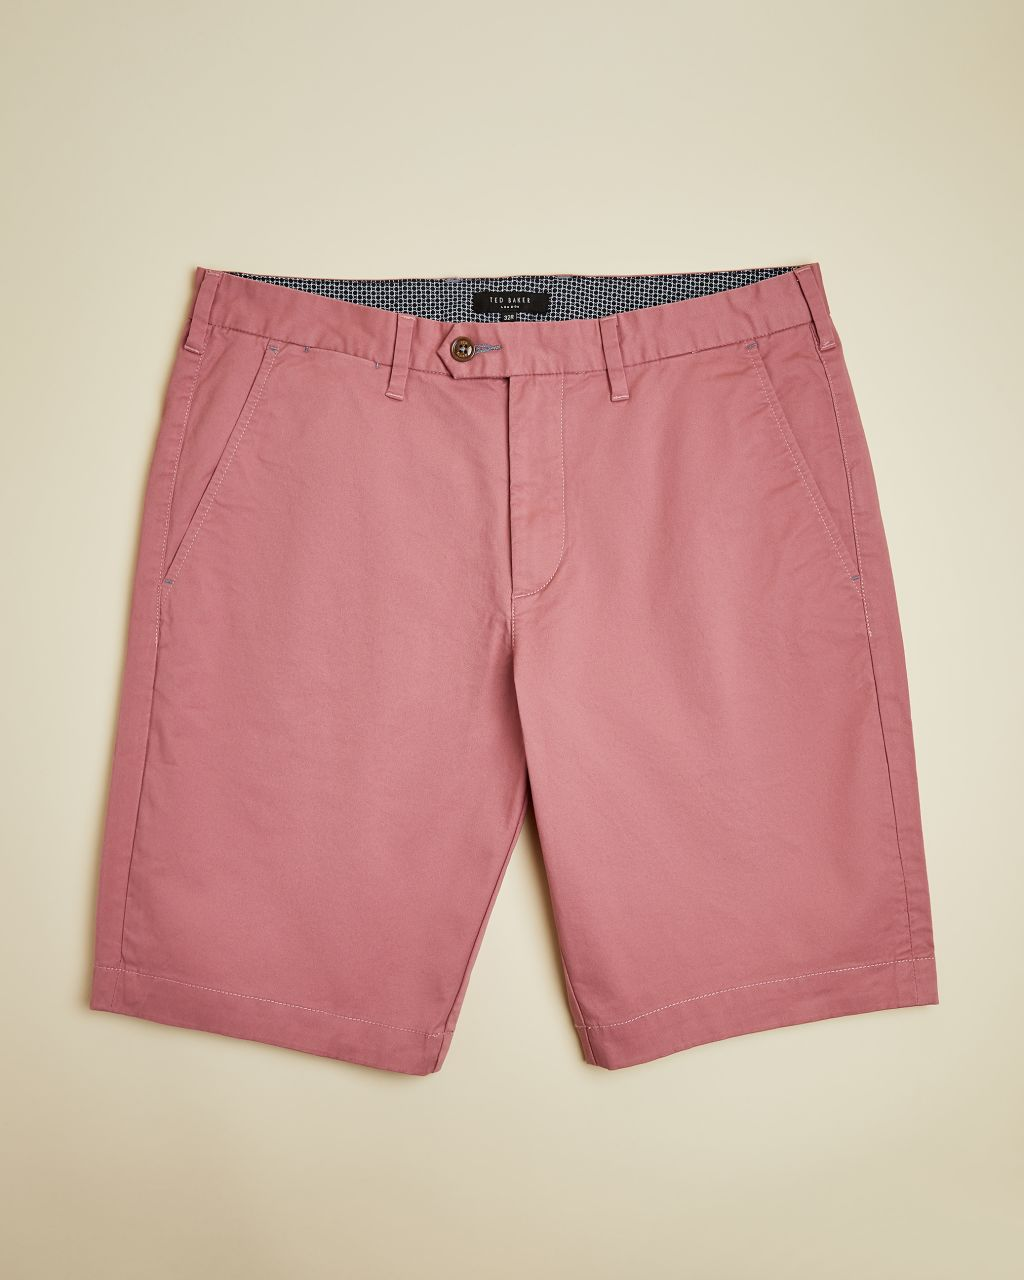 TED BAKER Cotton Chino Shorts | TED BAKER SALE